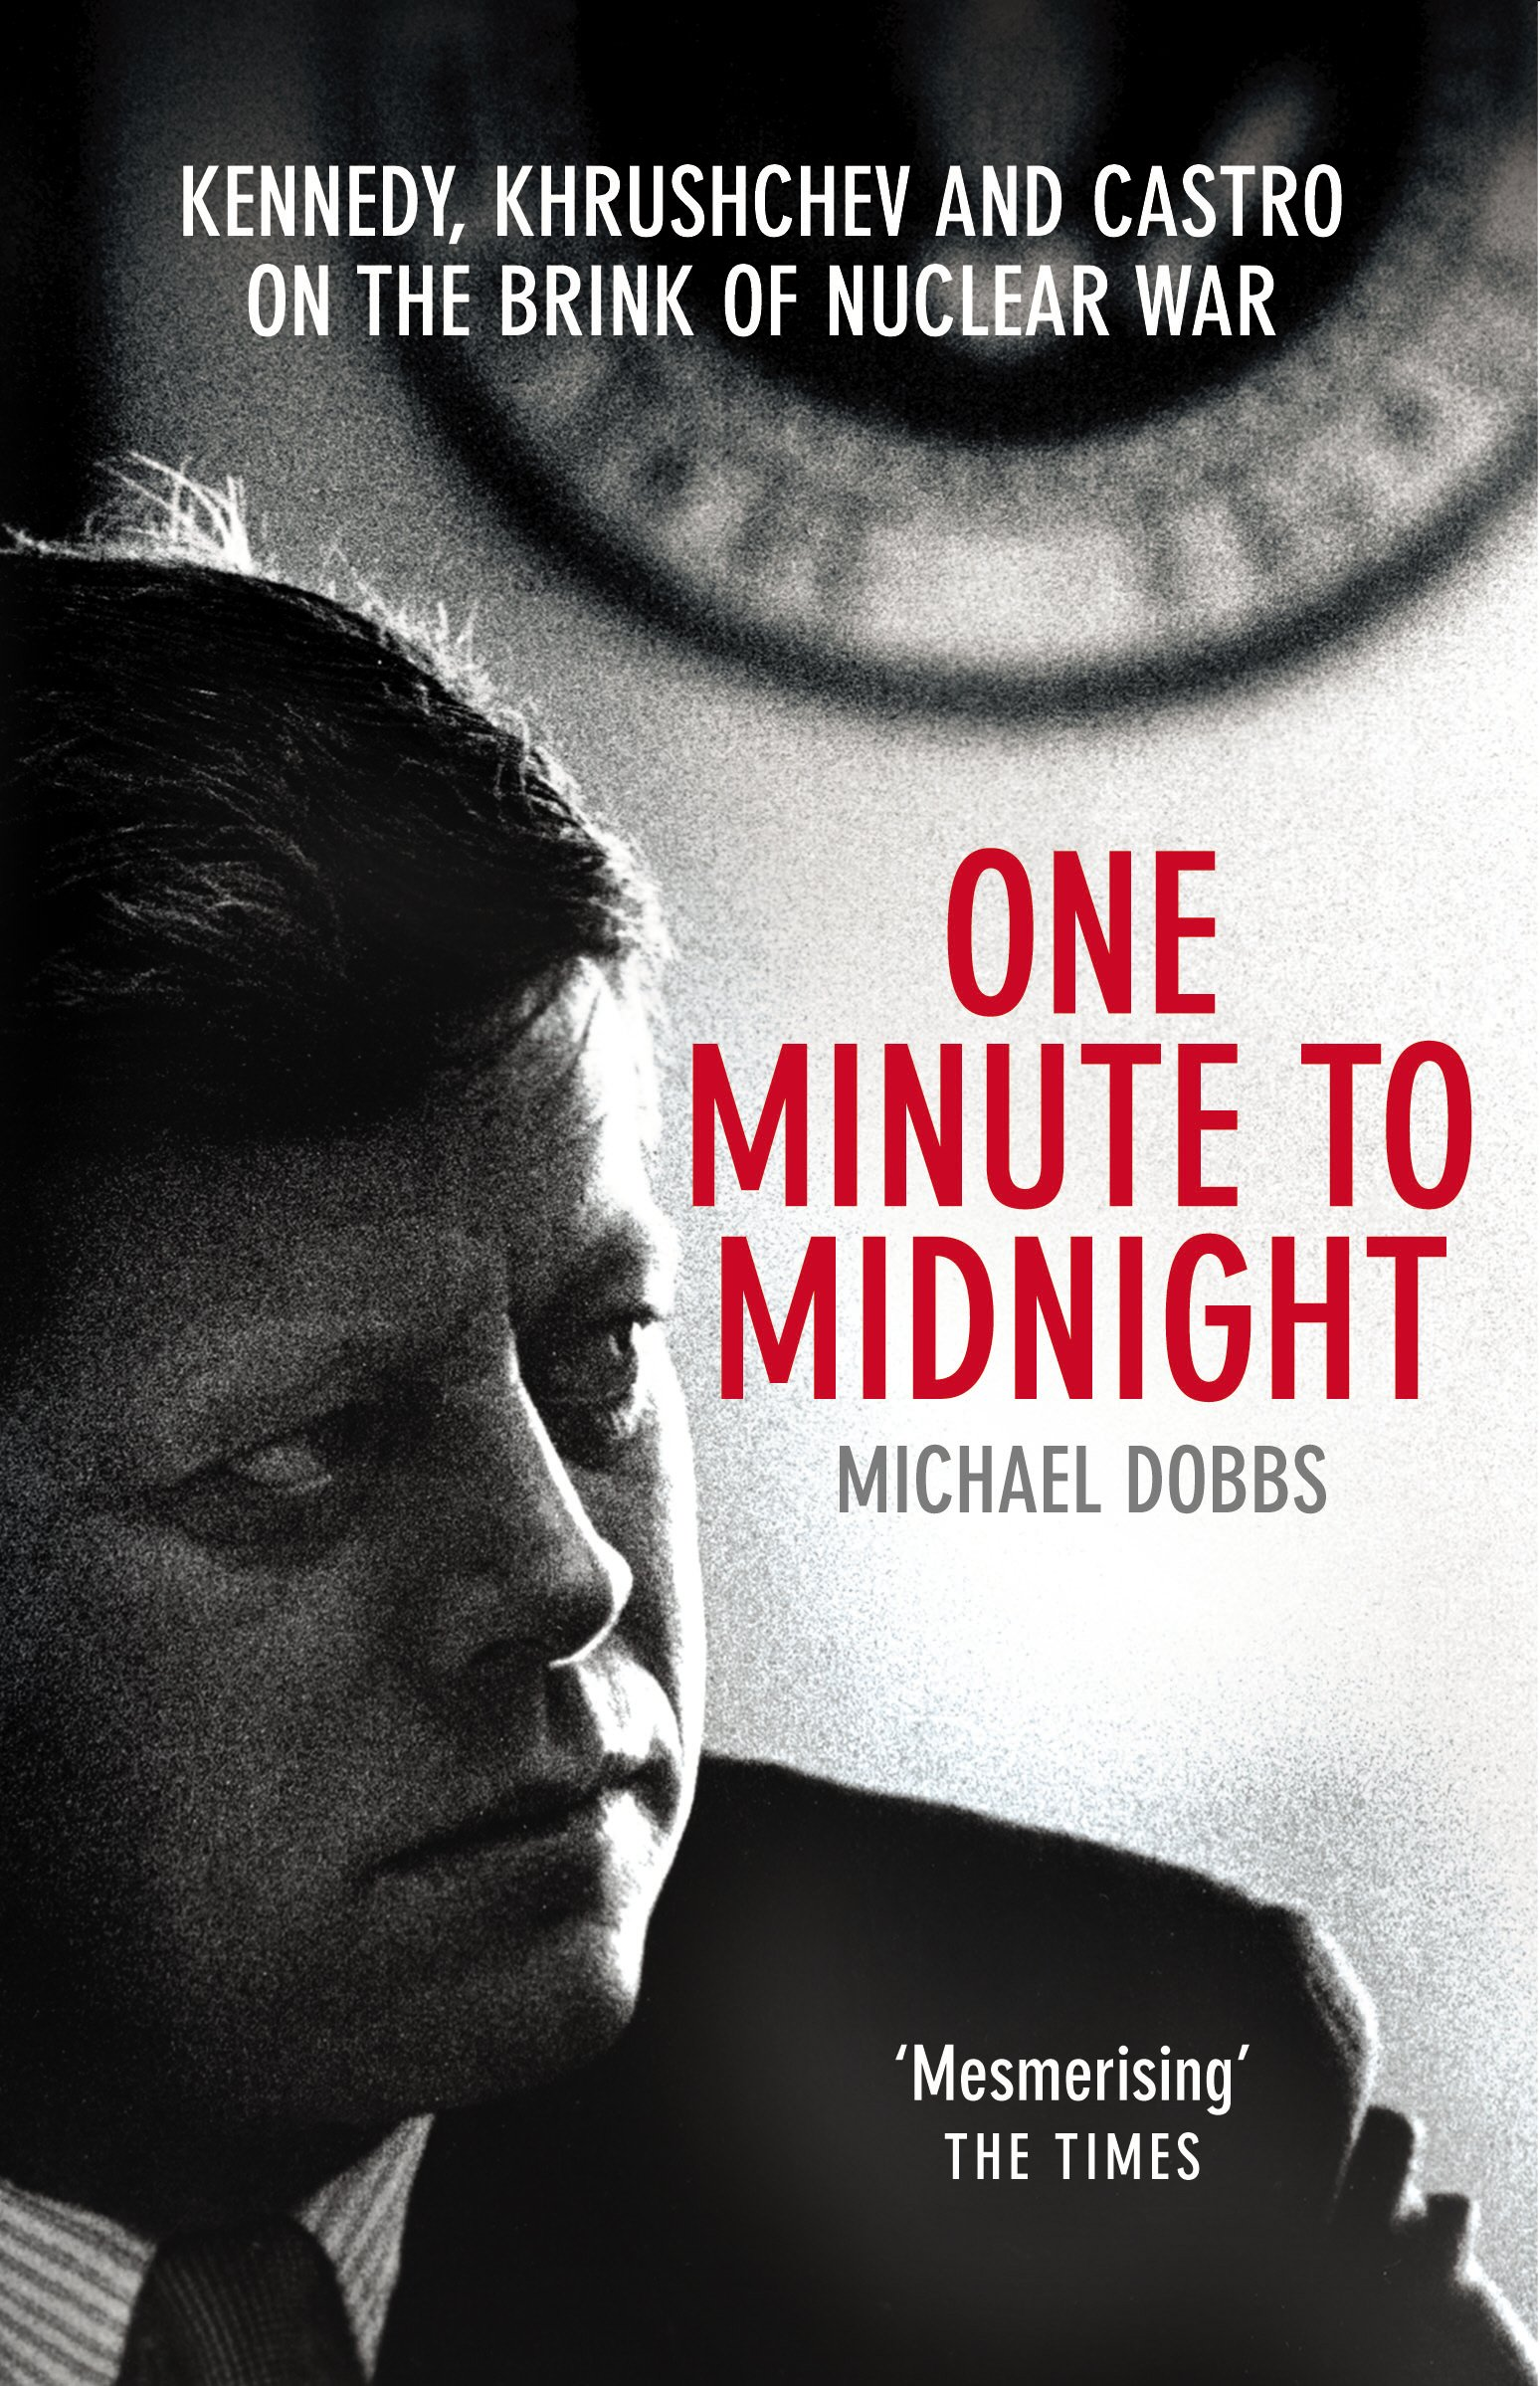 One Minute To Midnight  Kennedy Khrushchev And Castro On The Brink Of Nuclear War  English Edition